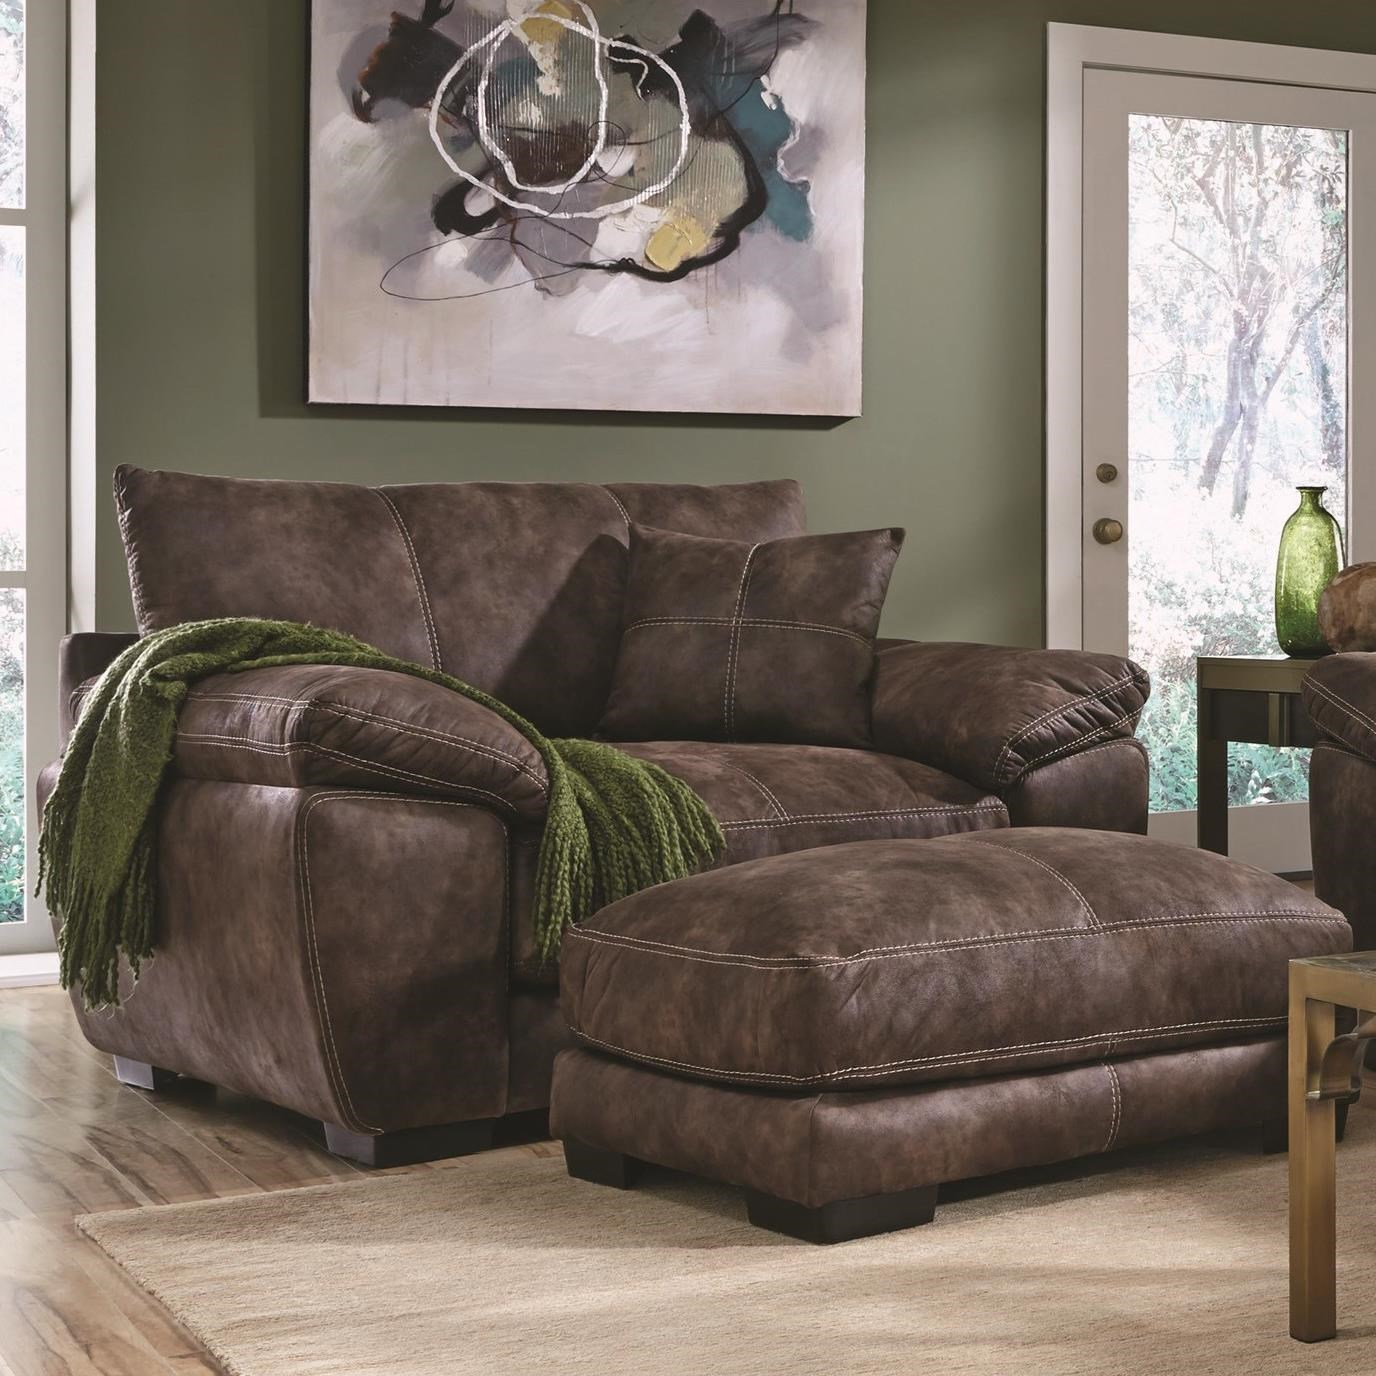 Franklin Teagan Upholstered Chair And A Half With Pillow Arms Howell Furniture Chair A Half